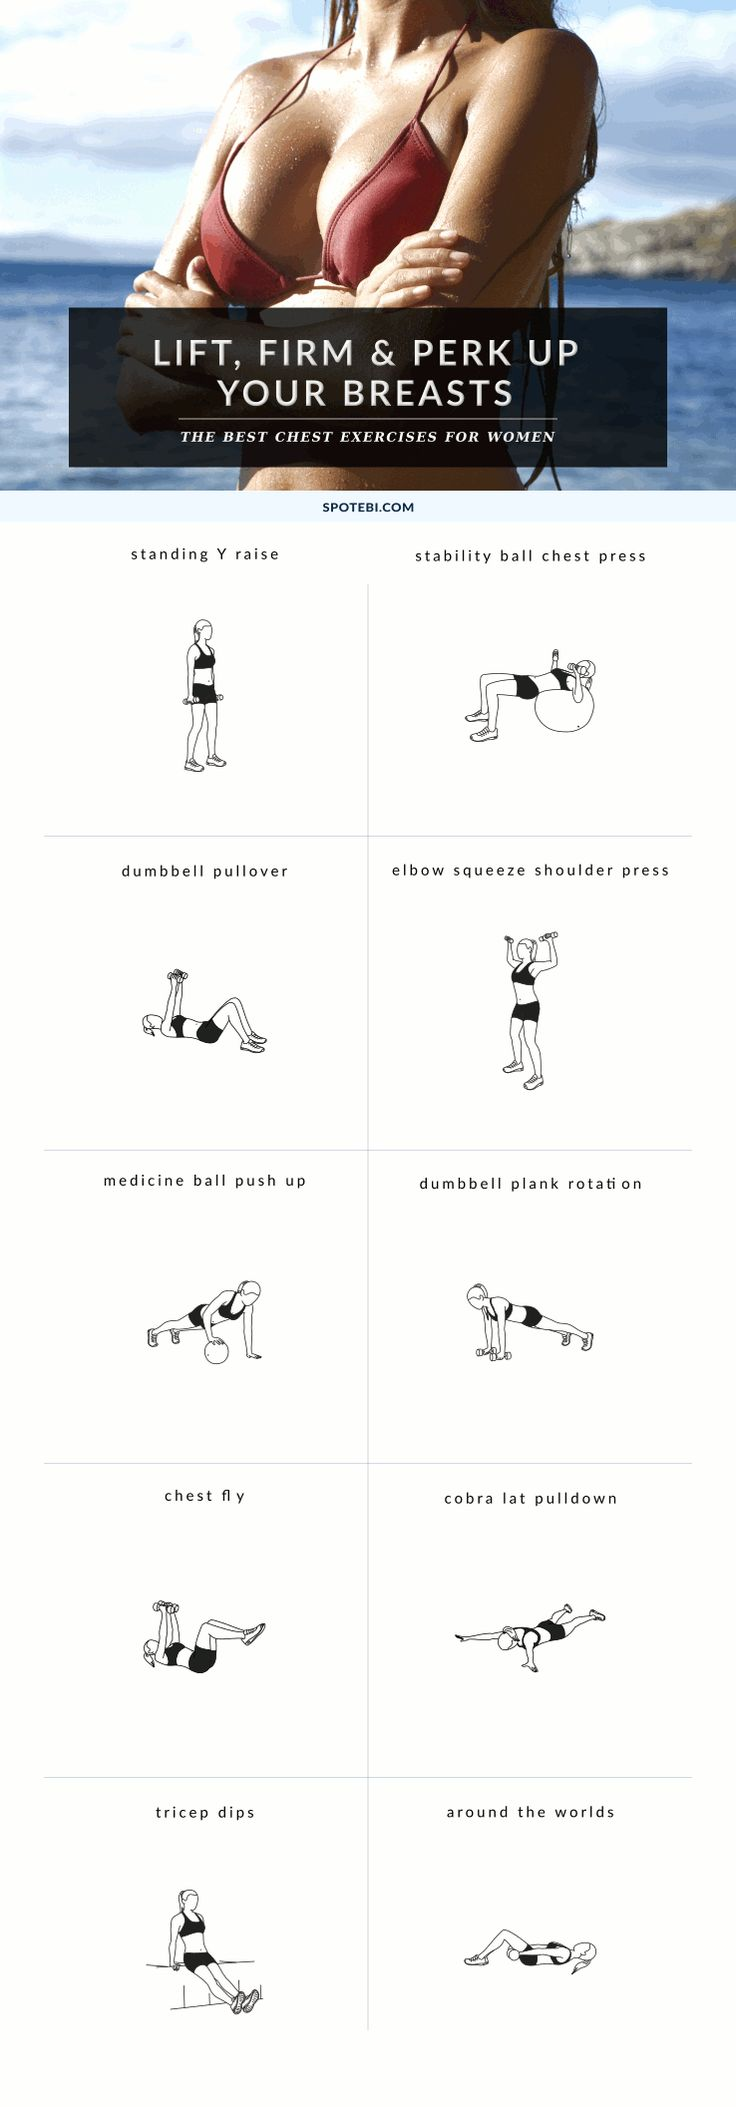 Try these 10 chest exercises for women to give your bust line a lift and make your breasts appear bigger and perkier, the natural way! Lift, firm, and perk up your boobs http://www.spotebi.com/fitness-tips/the-best-chest-exercises-for-women/